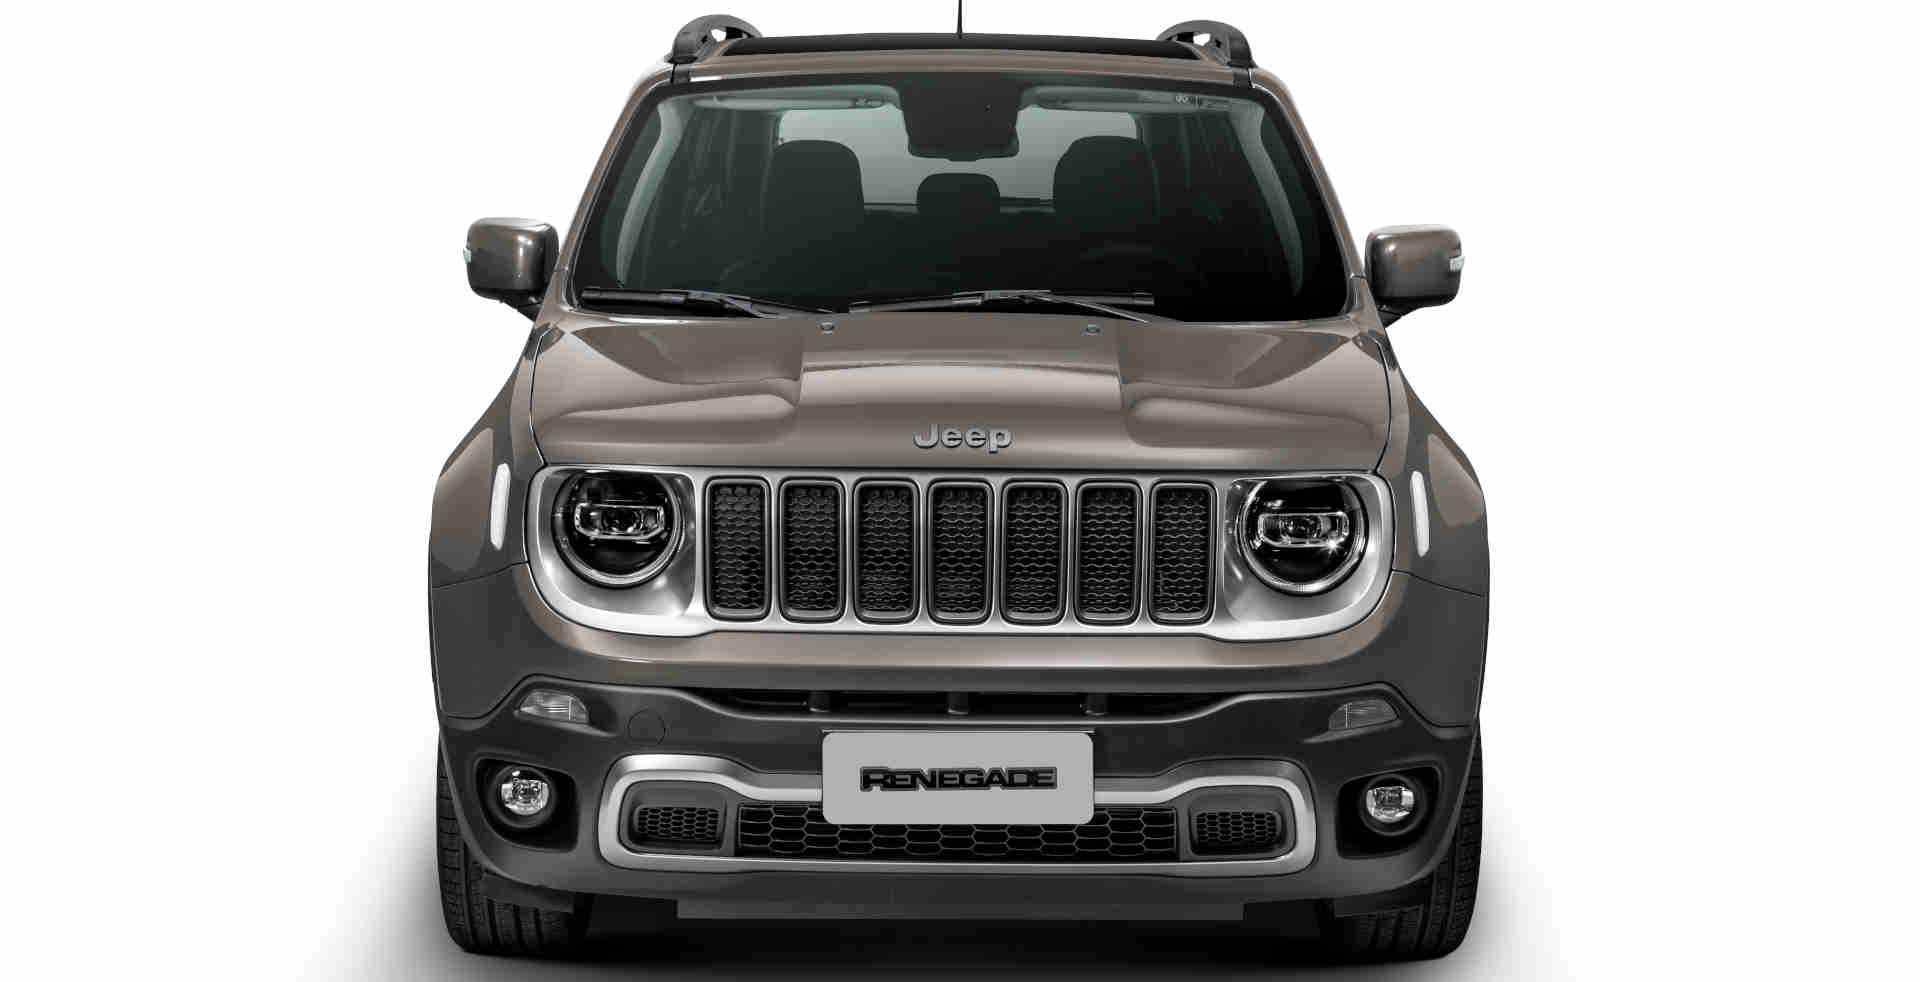 Dianteira do Jeep Renegade Limited flex 2021